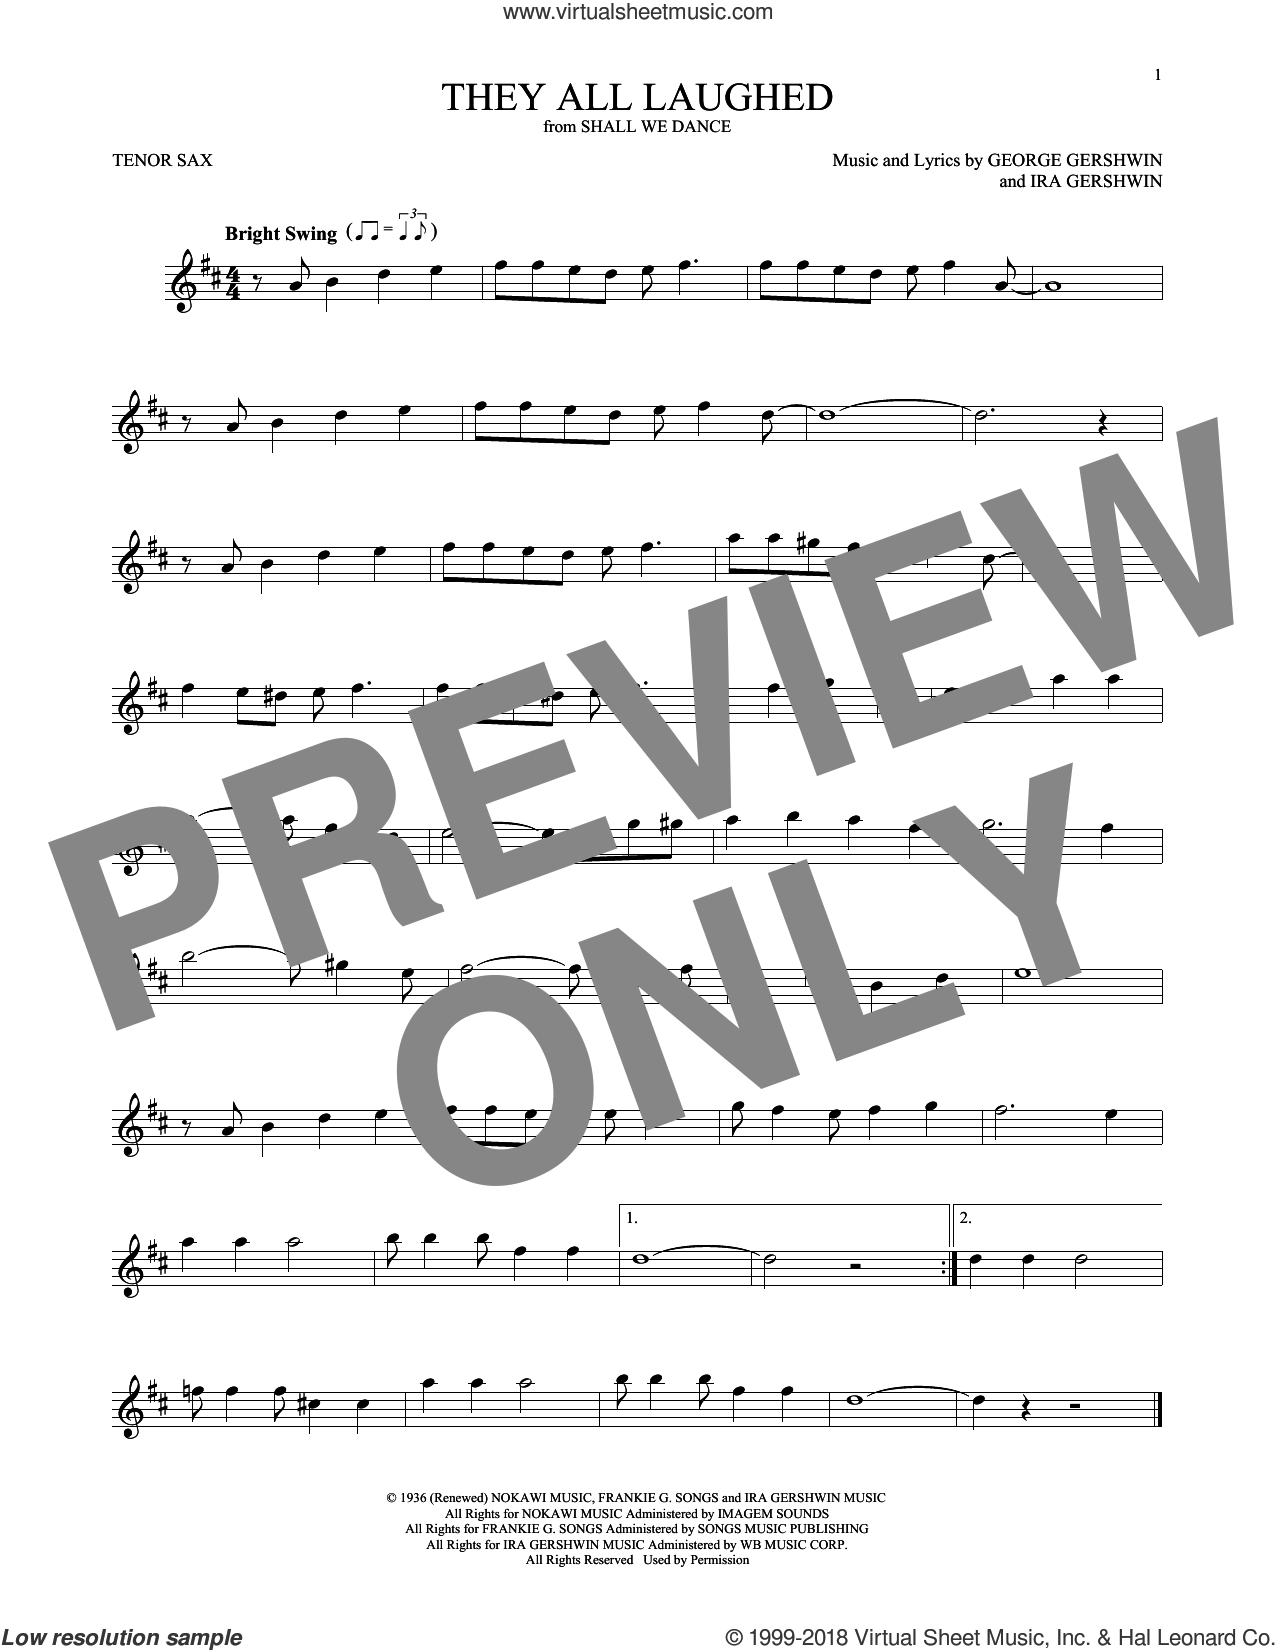 They All Laughed sheet music for tenor saxophone solo by Frank Sinatra, George Gershwin and Ira Gershwin, intermediate. Score Image Preview.